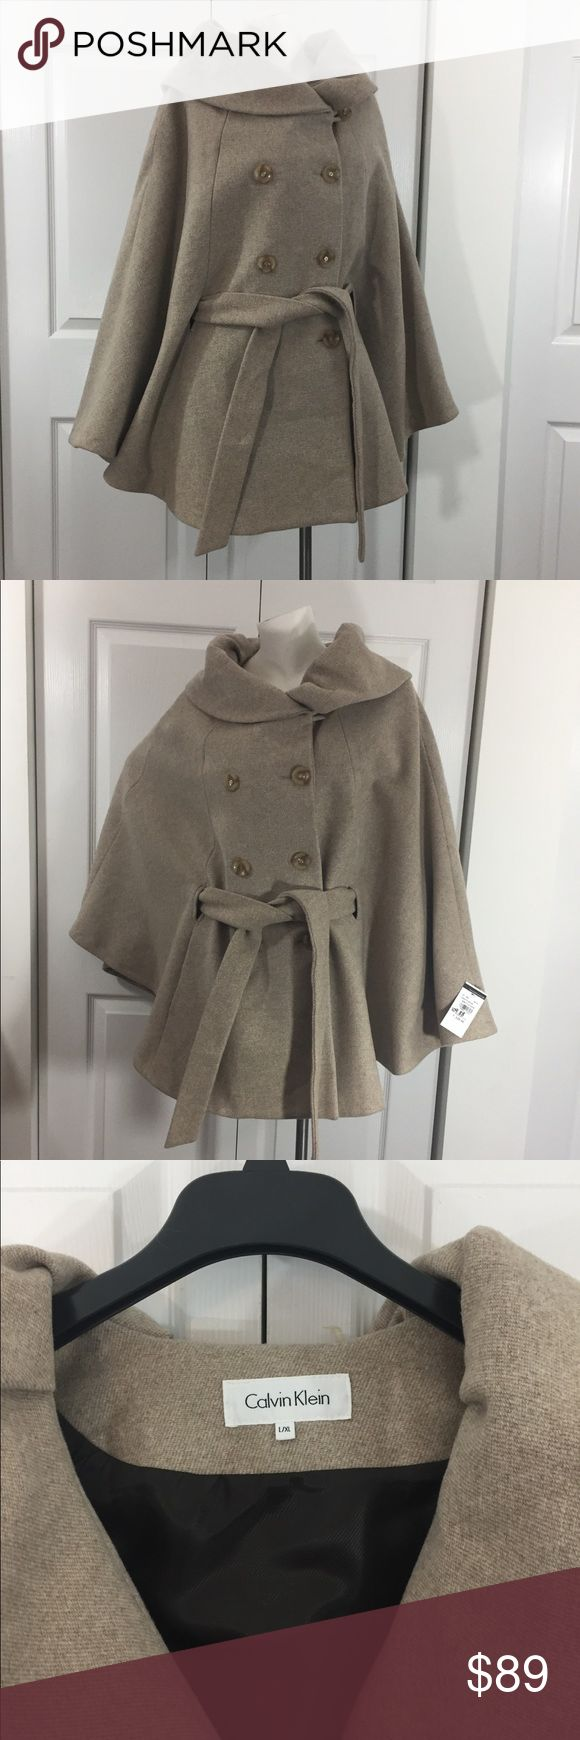 """CALVIN KLEIN Wool Blend Cape Calvin Klein Cape.  Tan with a double breasted look. 4 button front closure with tie belt.  2 front pockets.  Size L / XL.  Approx. 51"""" across x 32"""" long.  60% wool, 35% polyester, 5% other.  Never worn, tags attached. Calvin Klein Jackets & Coats Capes"""